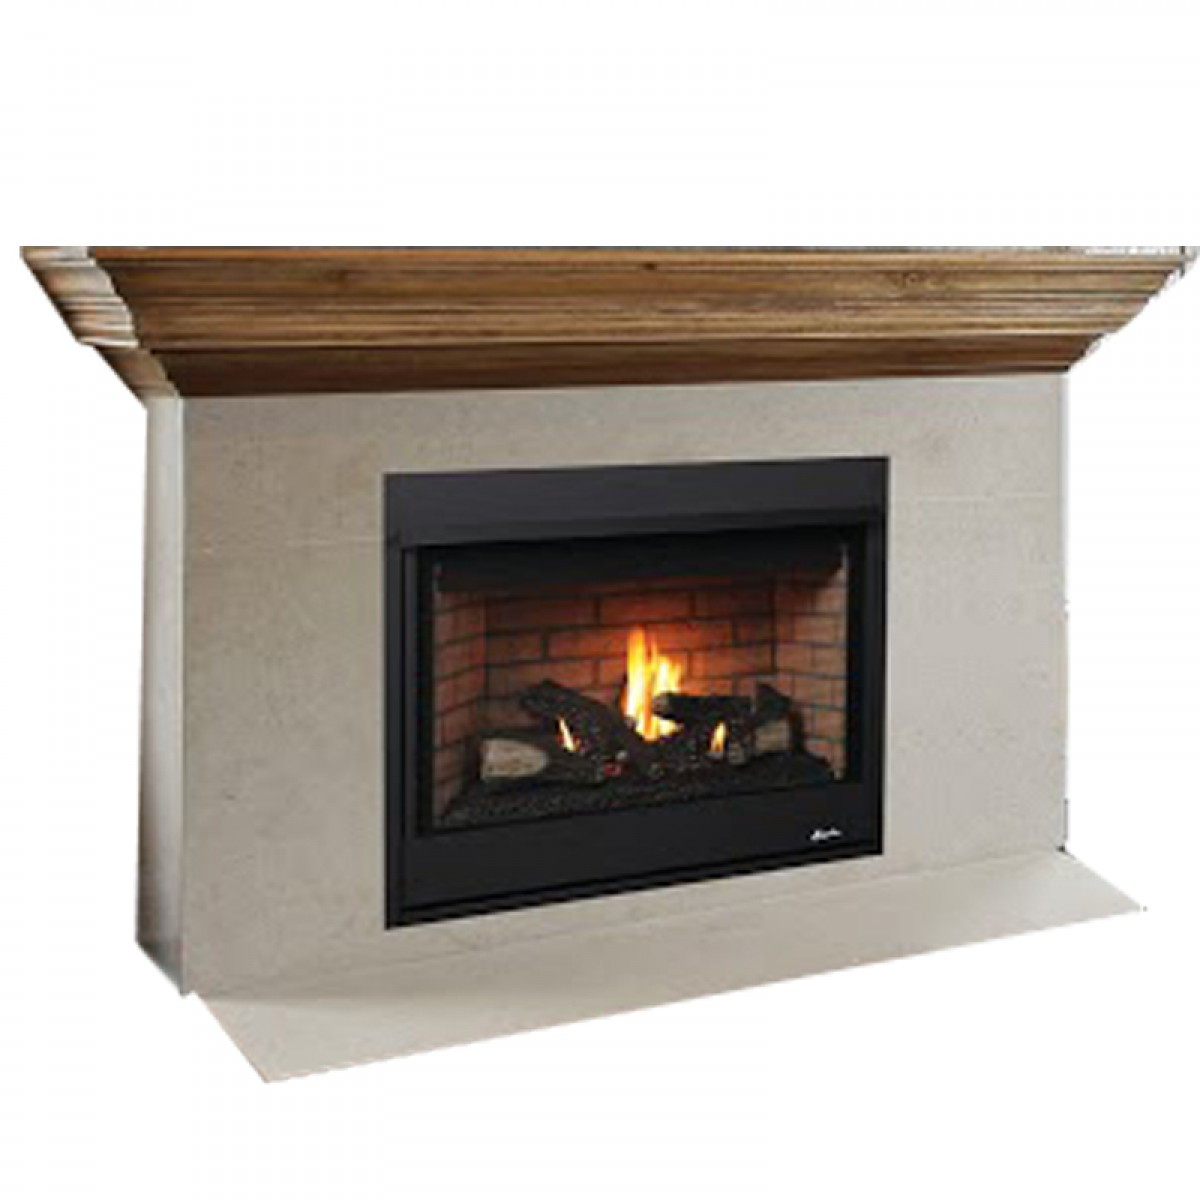 Best ideas about Direct Vent Gas Fireplace . Save or Pin IHP Superior DRT2000 Direct Vent Gas Fireplace Now.